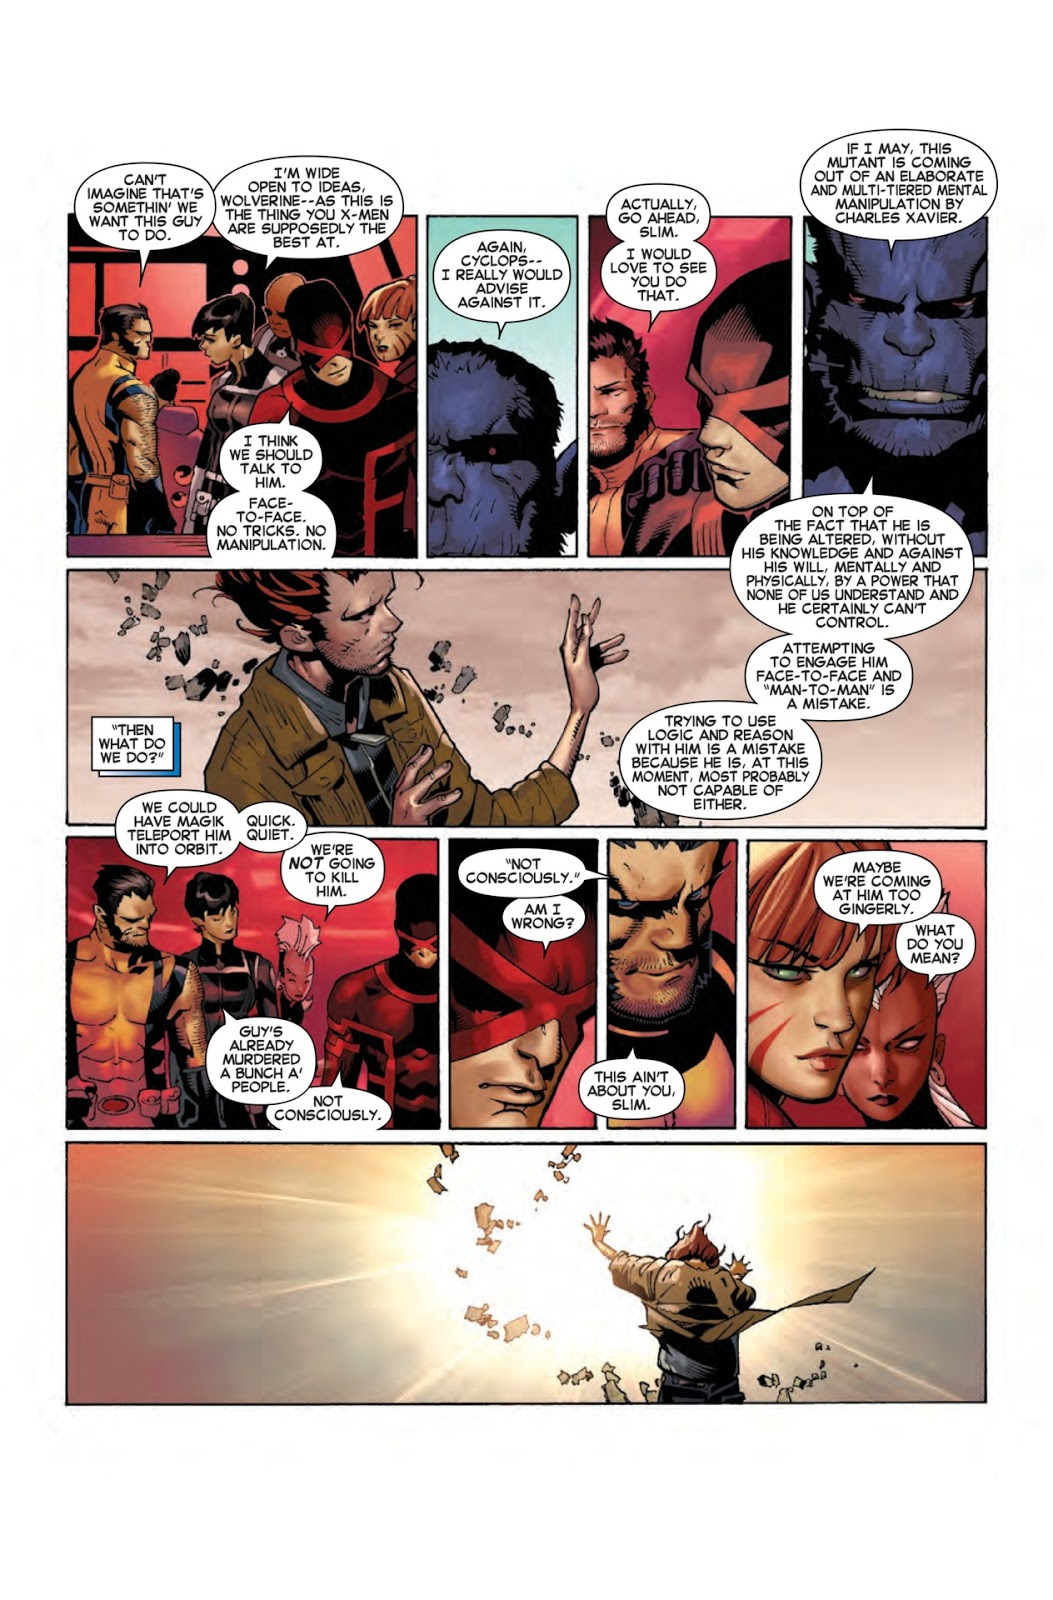 The X-Men are powerless to stop Matthew Malloy